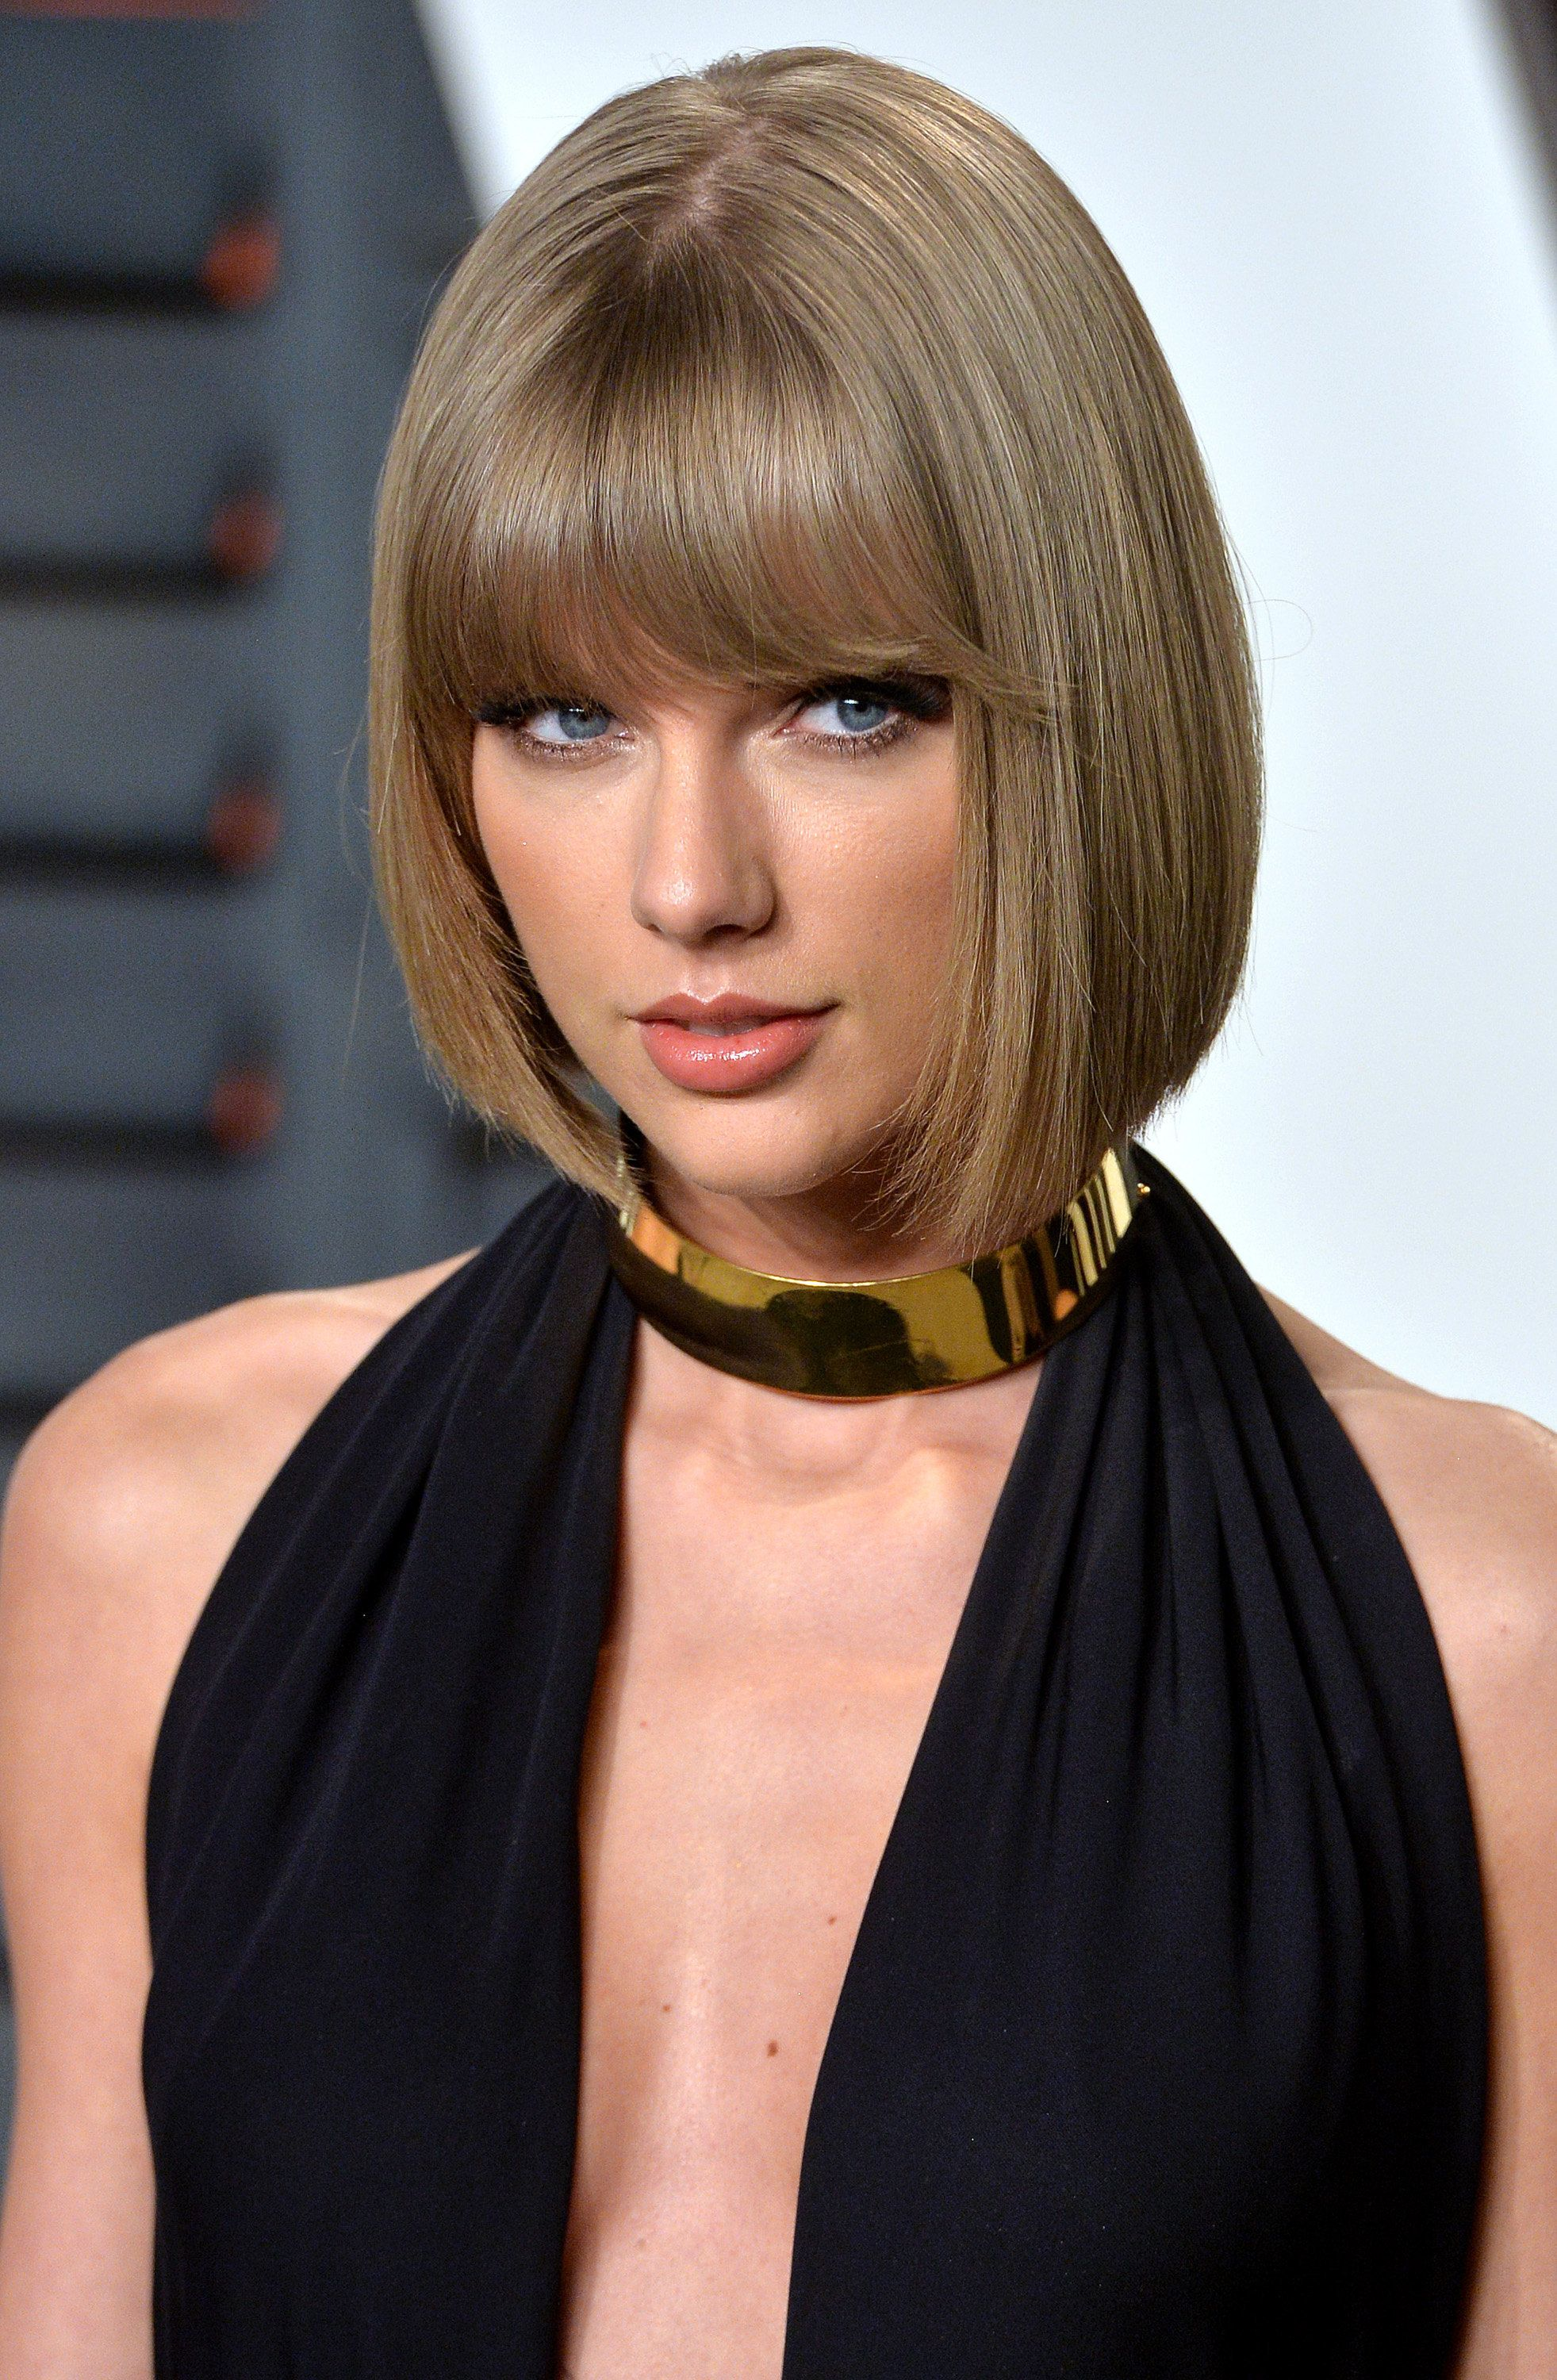 Taylor Swift's classic bob is not too long and not too short, making it an ideal length for fine hair textures.